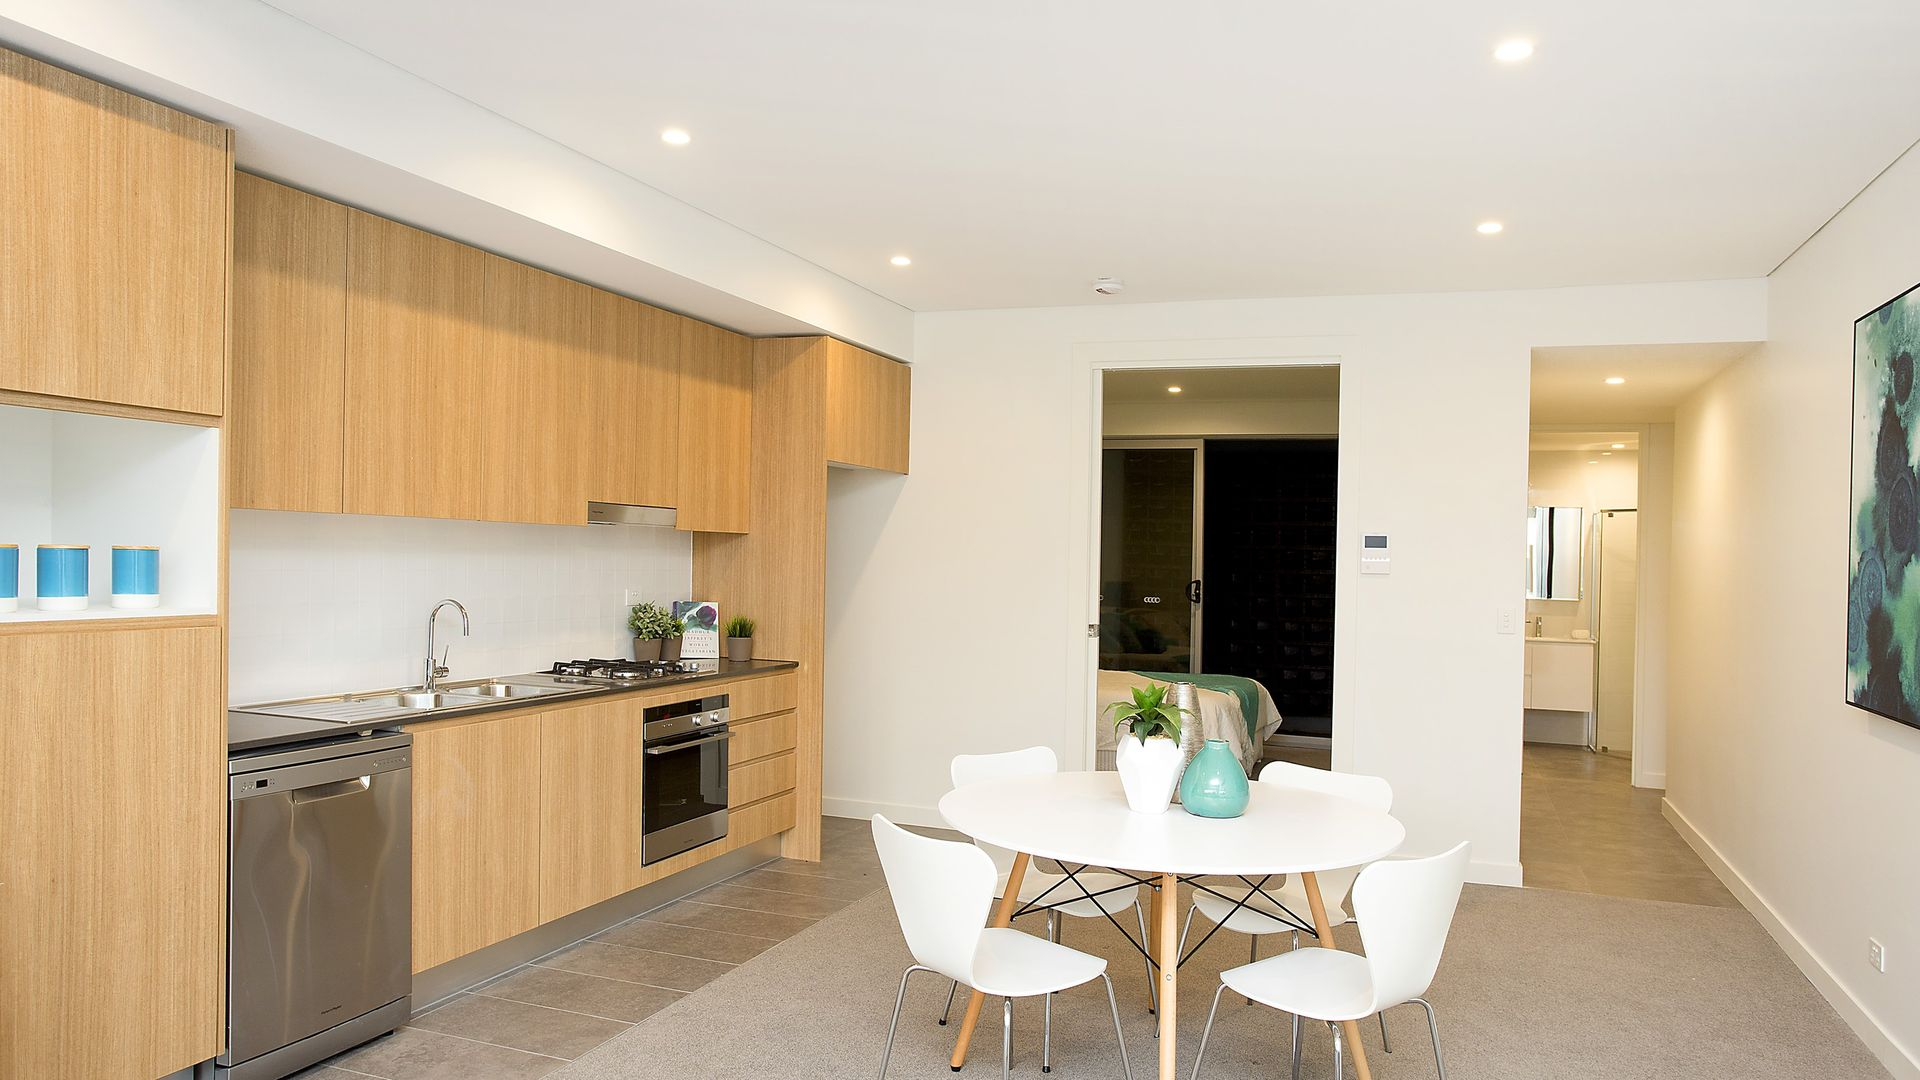 7/301-303 Condamine Street, Manly Vale NSW 2093, Image 1